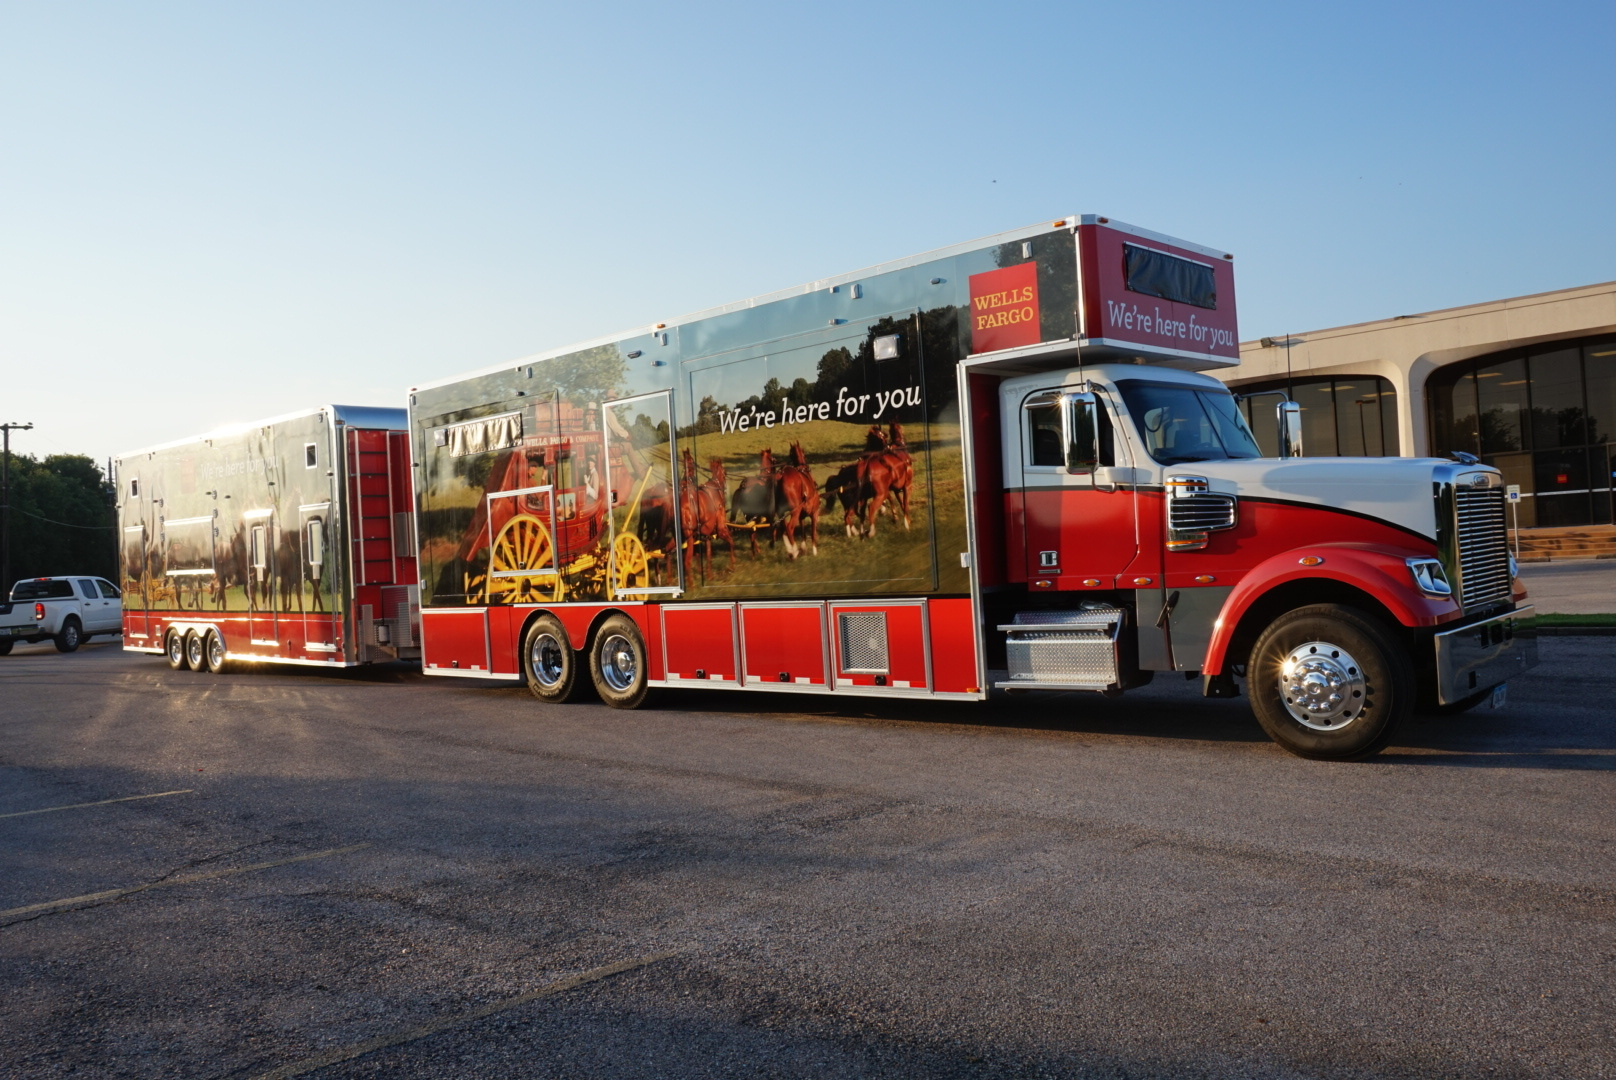 Wells Fargo Deploys Mobile Response Unit To Panhandle To Help